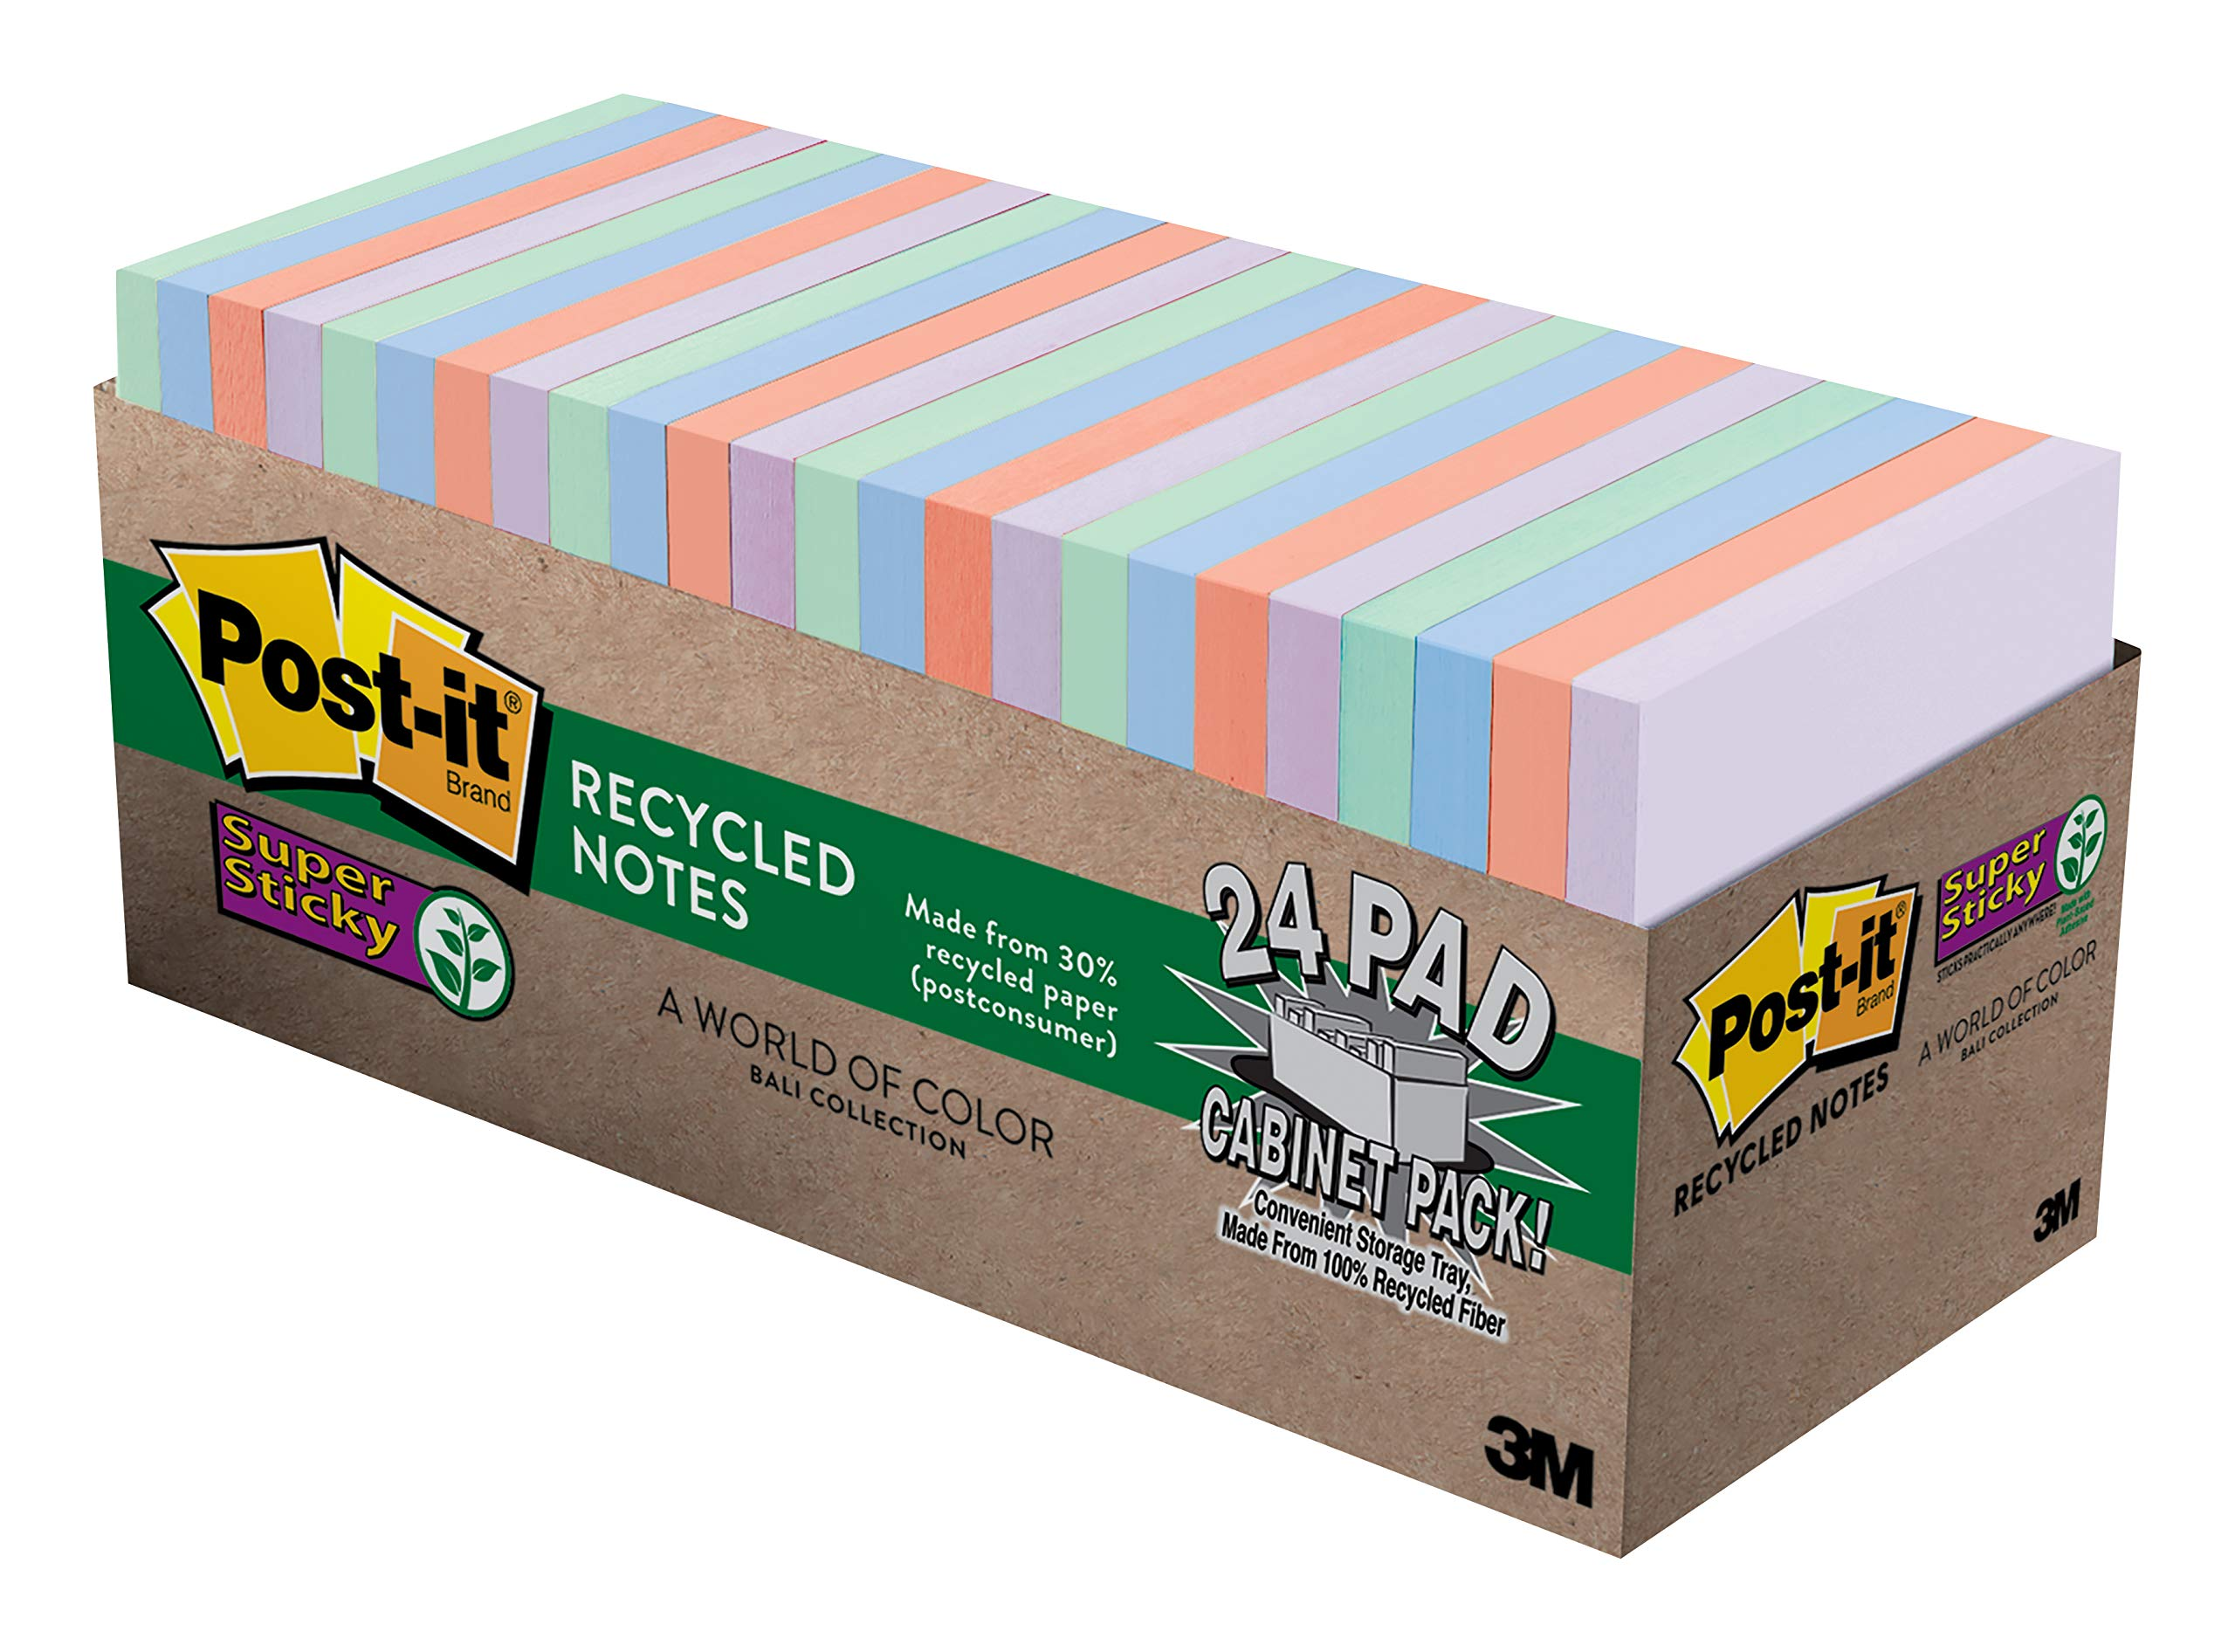 Post-it Super Sticky Recycled Notes, Bali Colors, 2X the Sticking Power, Large Pack, 3 in. x 3 in, 24 Pads/Pack, 70 Sheets/Pad (654-24NH-CP) by Post-it